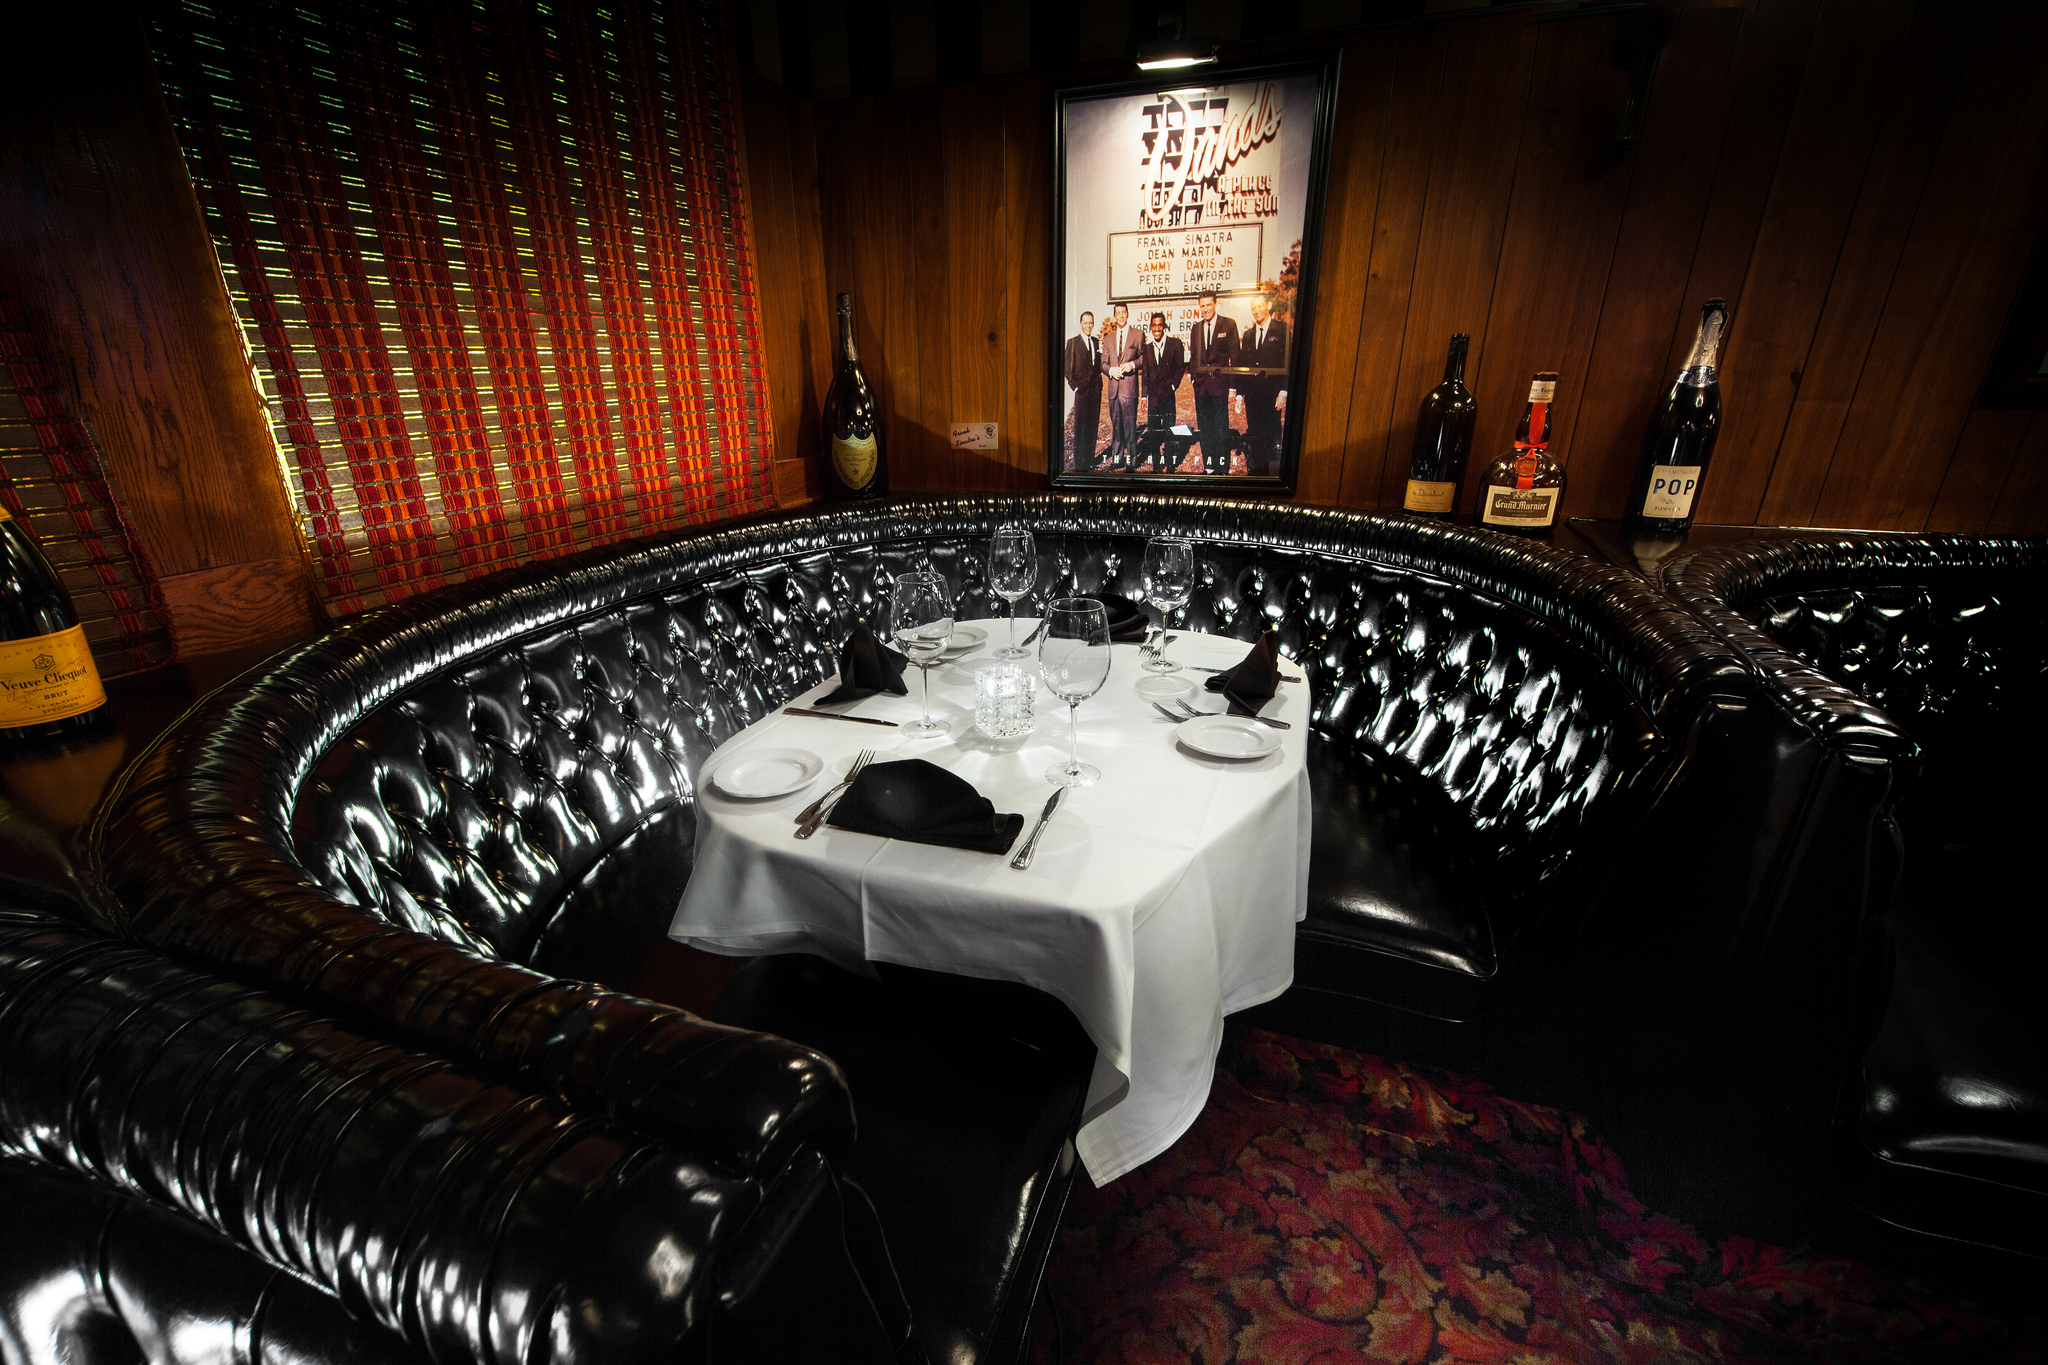 Frank Sinatra's booth at the Golden Steer